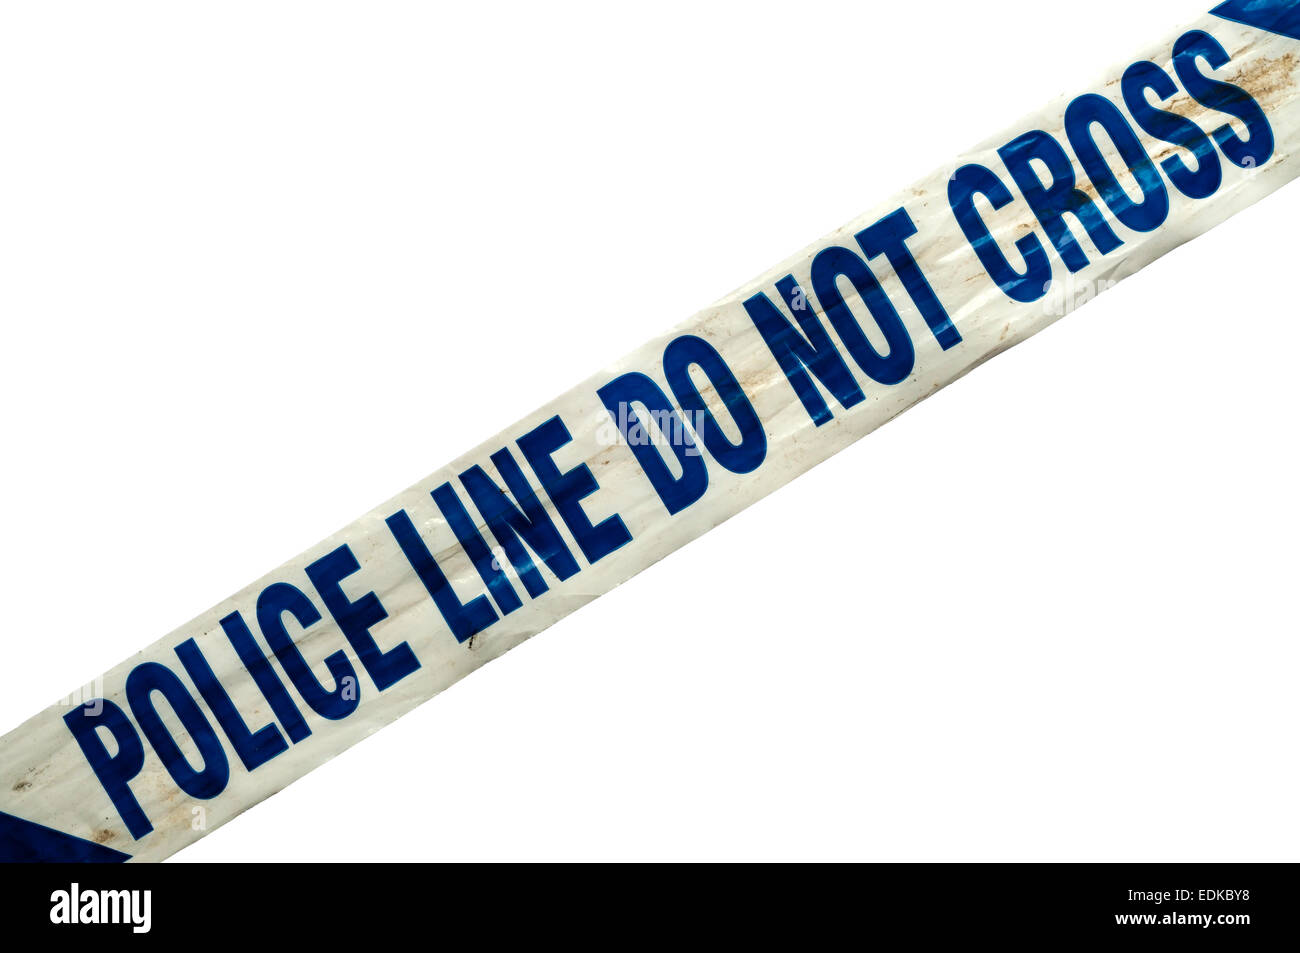 Police Line Do Not Cross message on police tape. - Stock Image